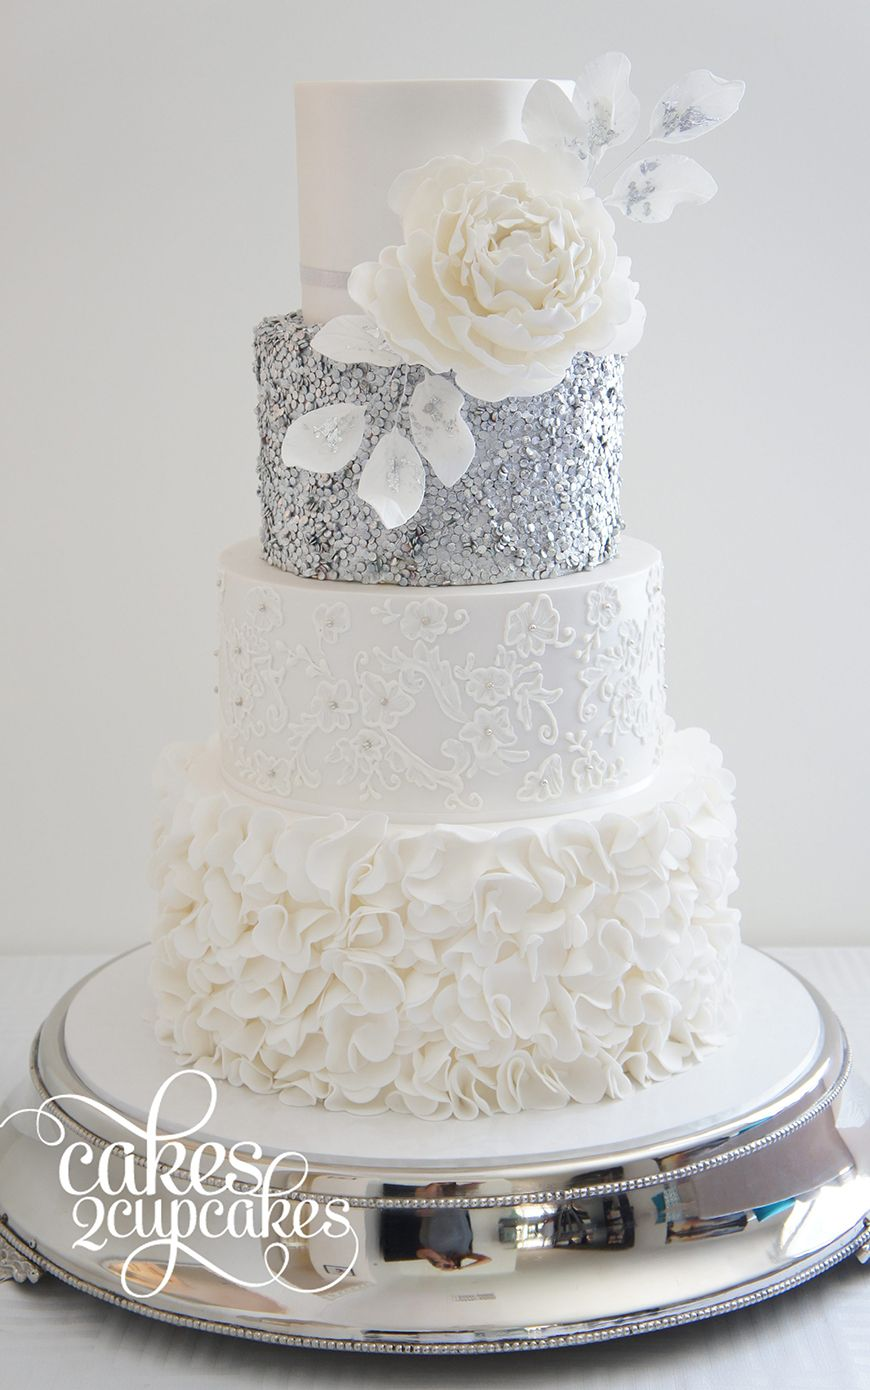 Pin by janice sands on Cakes | Pinterest | Wedding cake, Silver ...